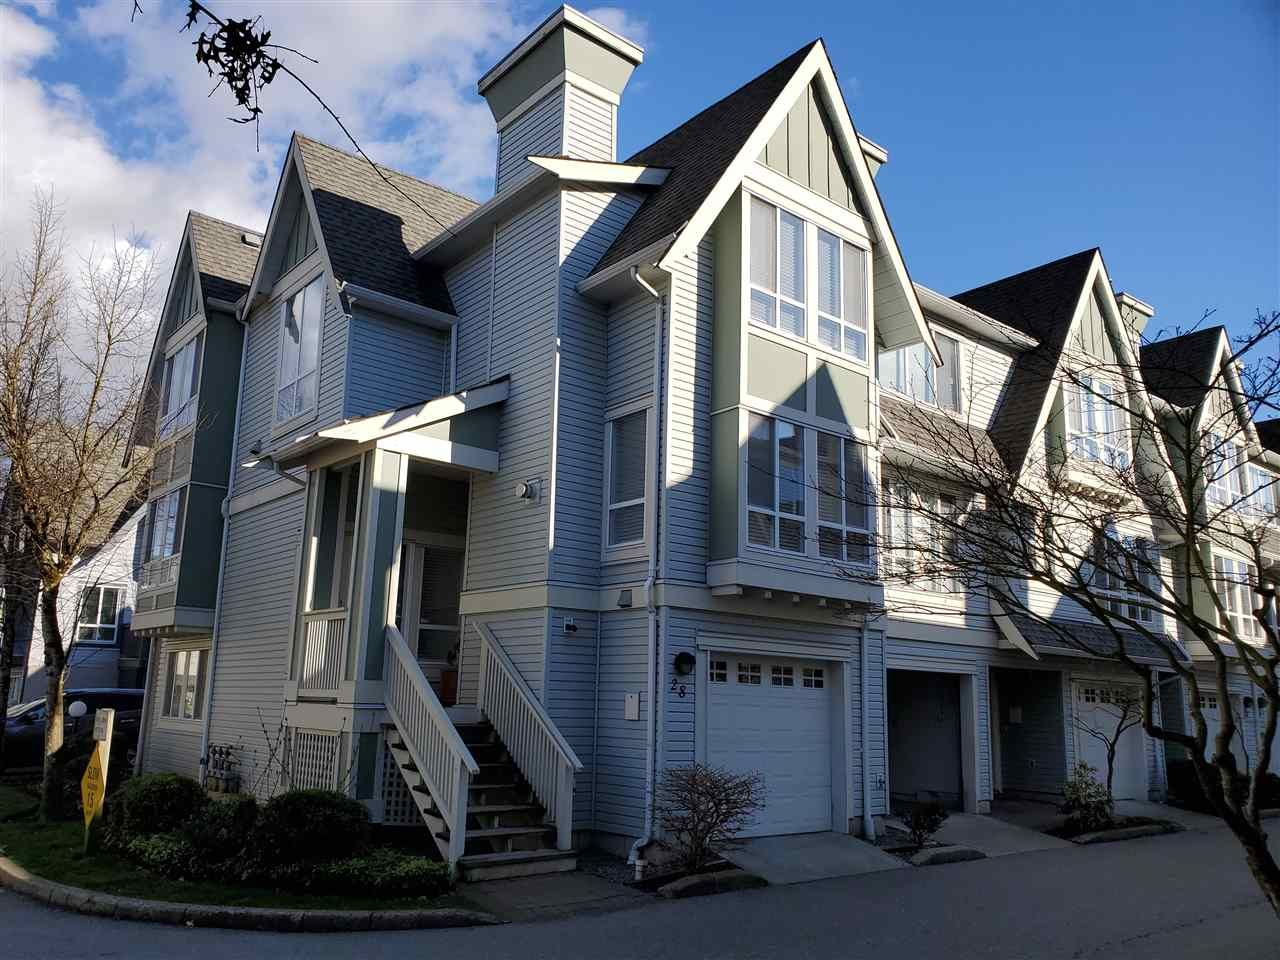 """Main Photo: 28 16388 85 Avenue in Surrey: Fleetwood Tynehead Townhouse for sale in """"CAMELOT"""" : MLS®# R2555638"""